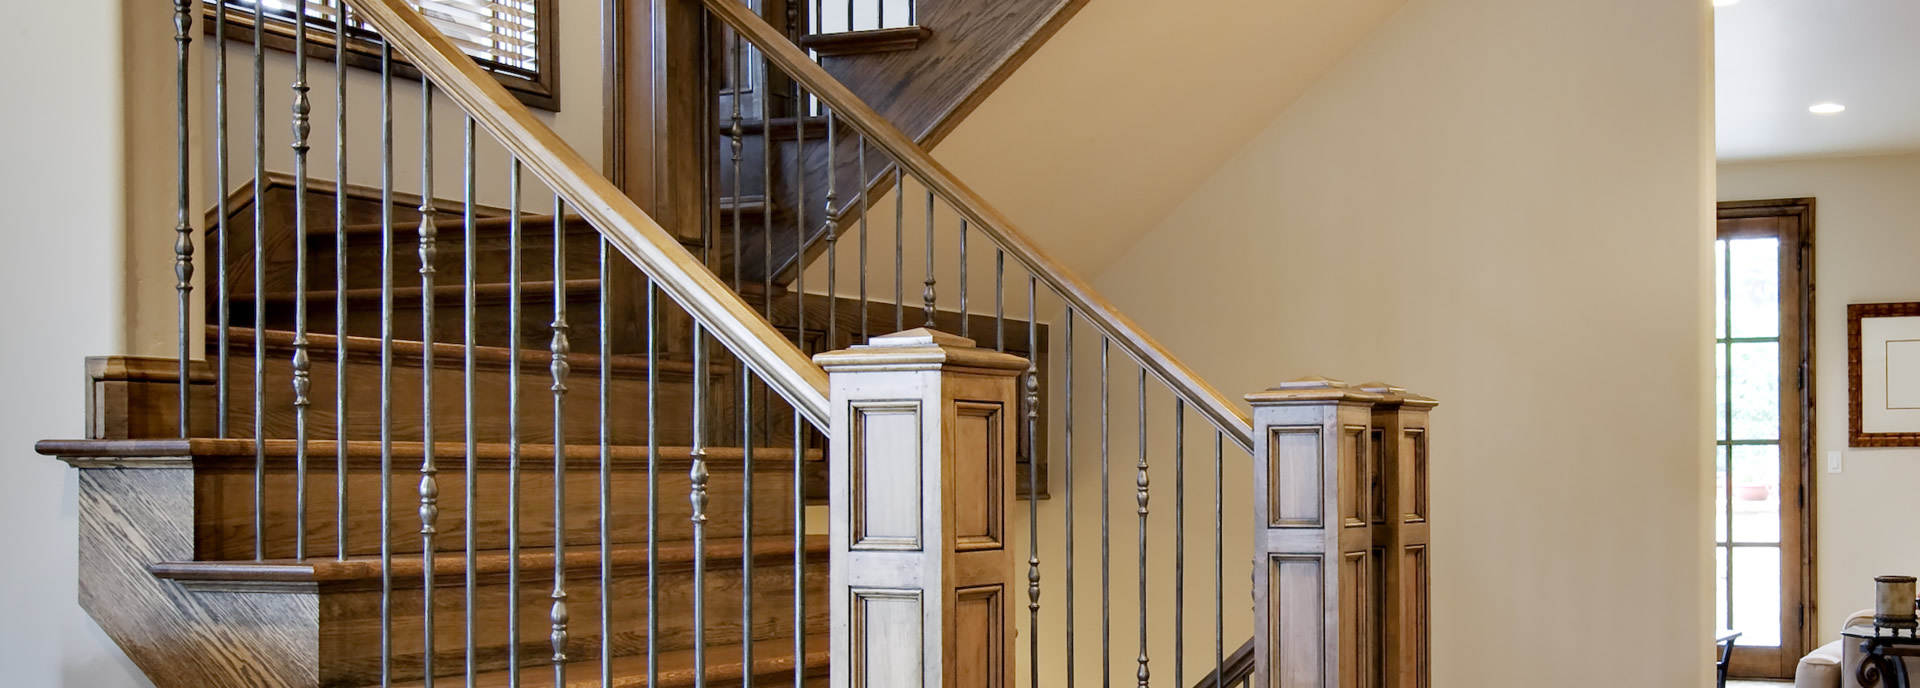 Staircase Architecture Then & Now: The Renaissance Alpharetta, GA